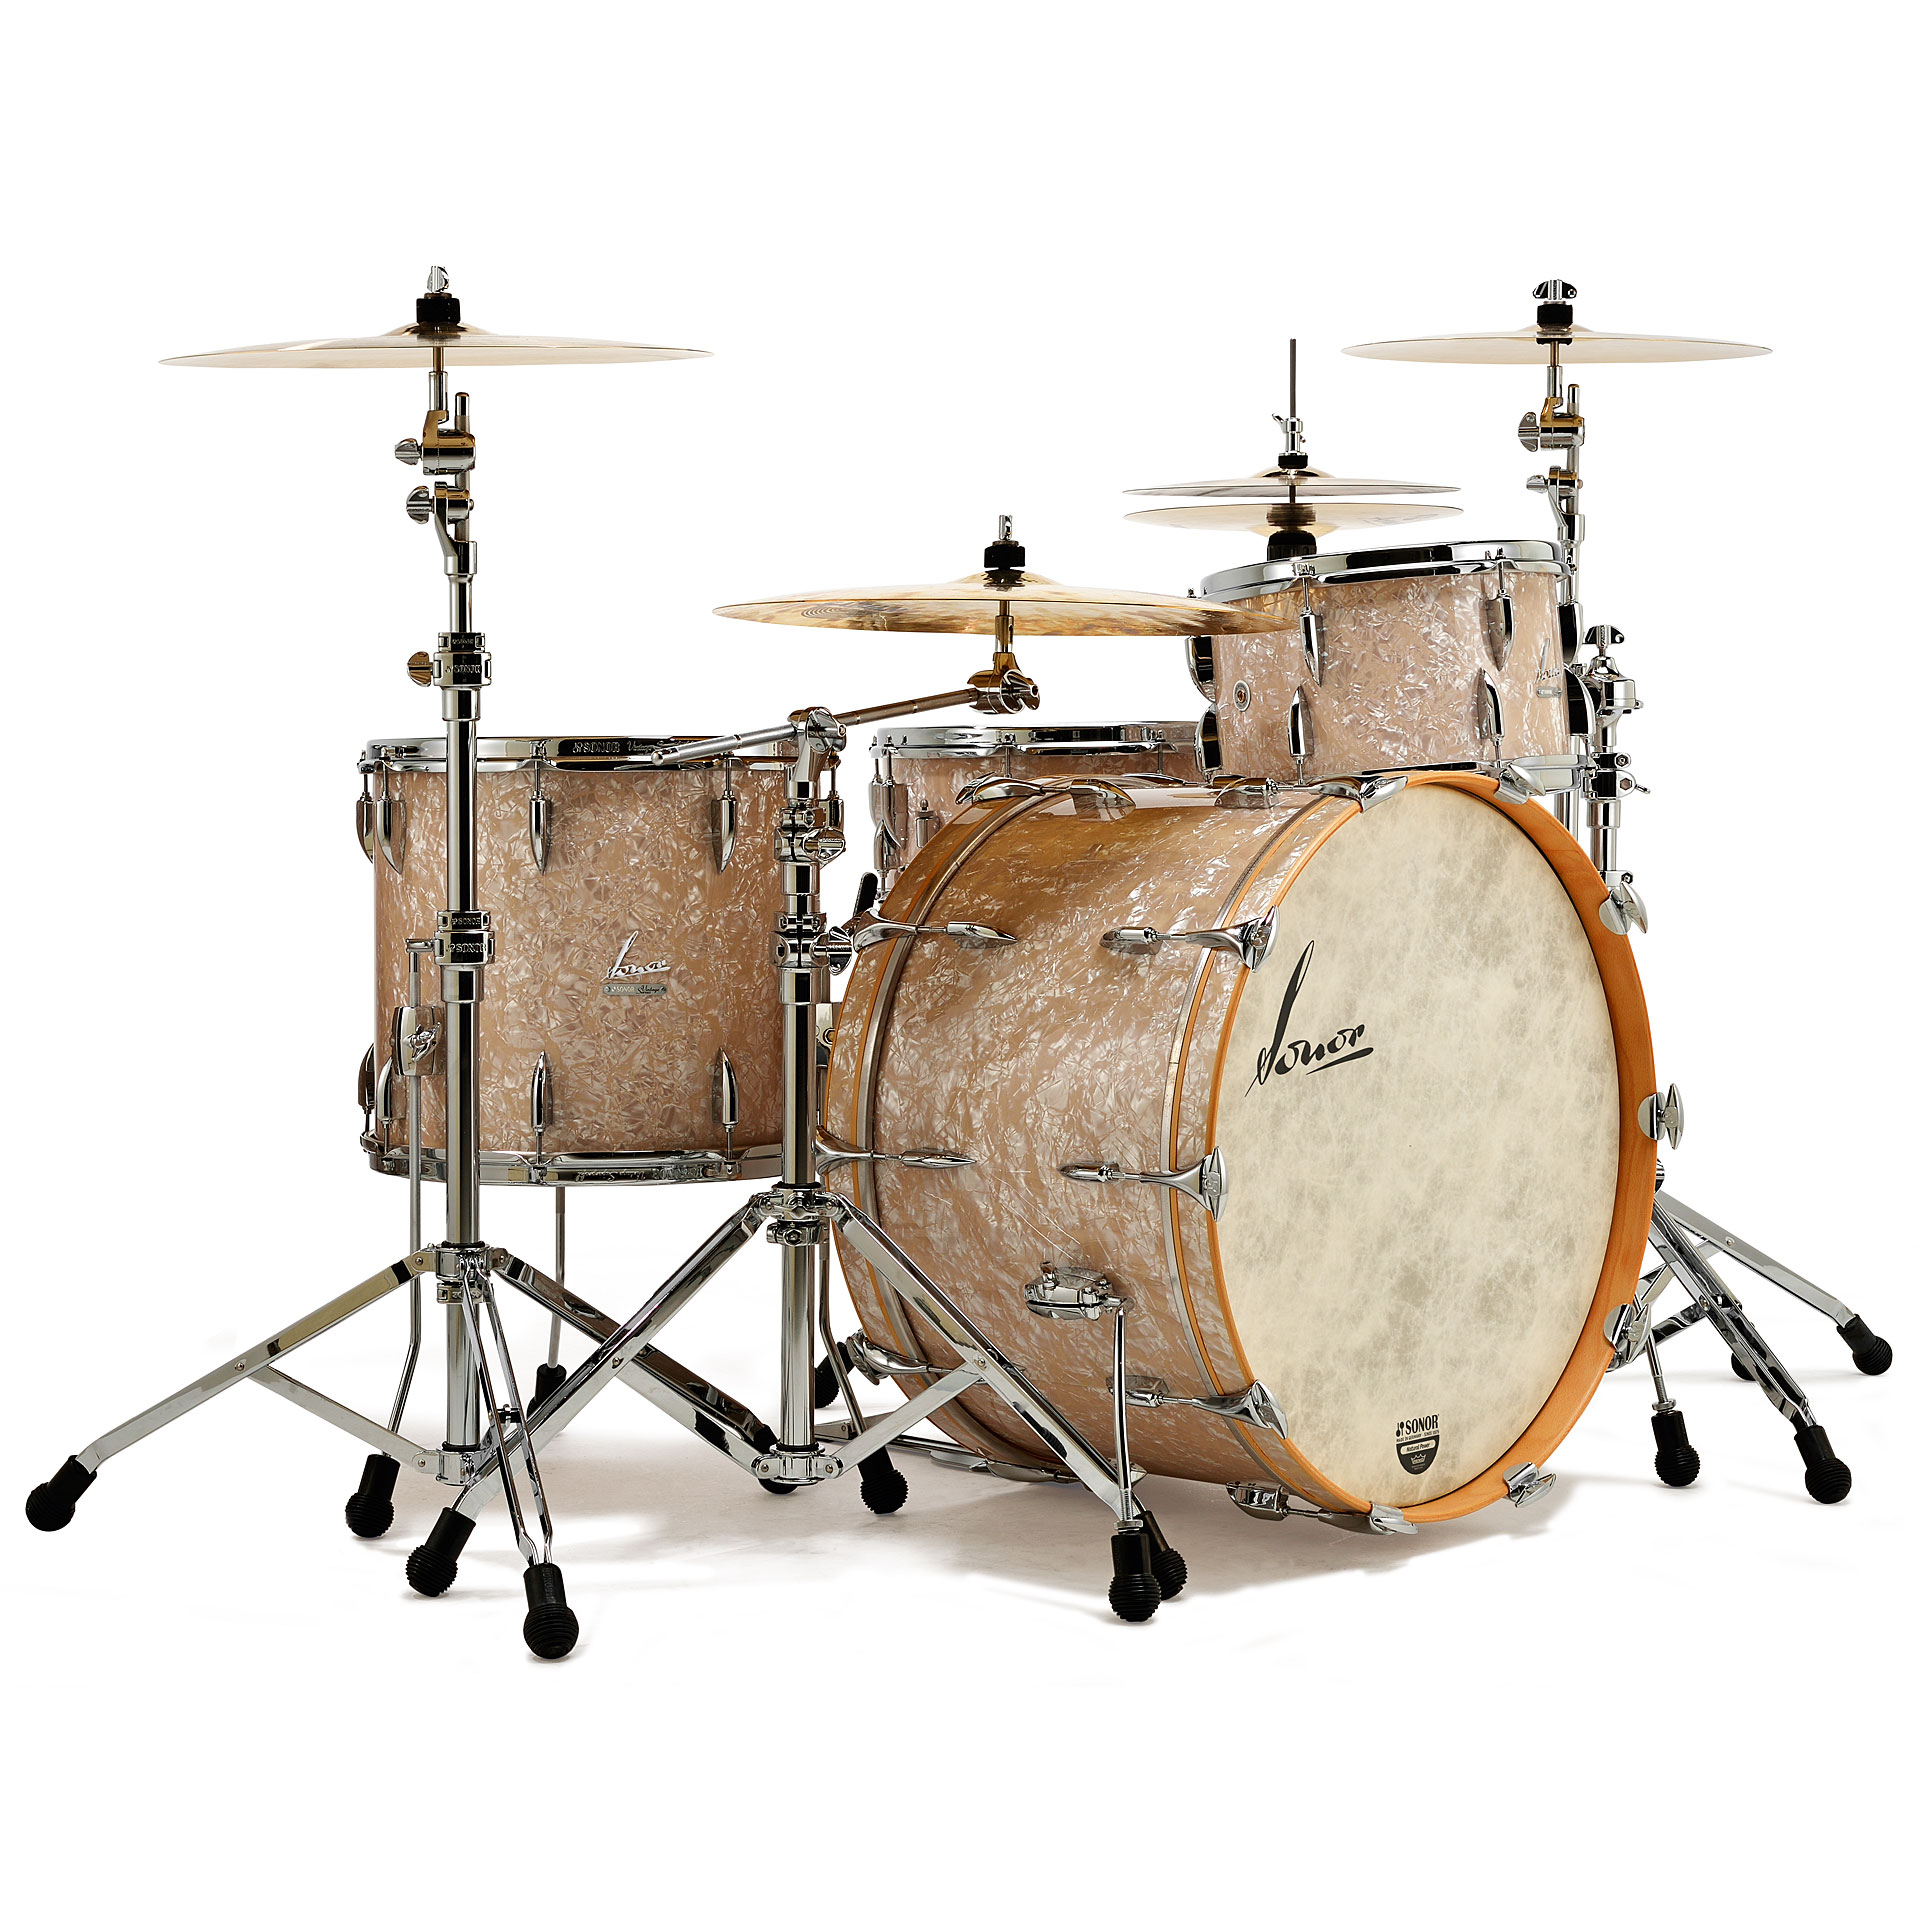 Sonor vintage series vt15 three22 vintage pearl drum kit for Classic house drums